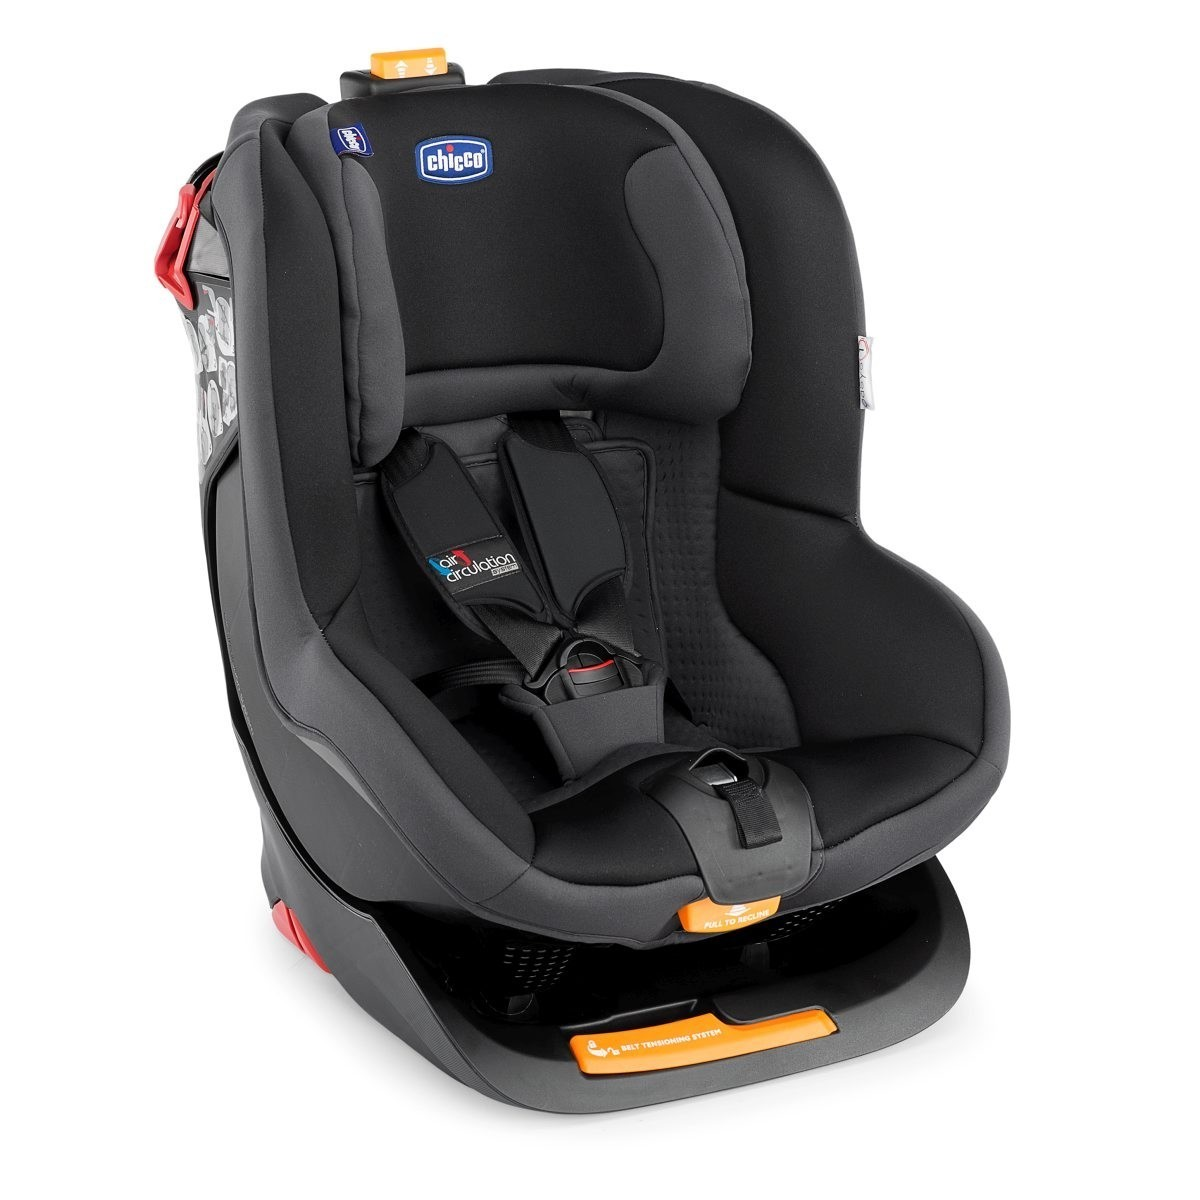 Автокресло NEW OASYS 1 EVO ISOFIX Coal от Ravta